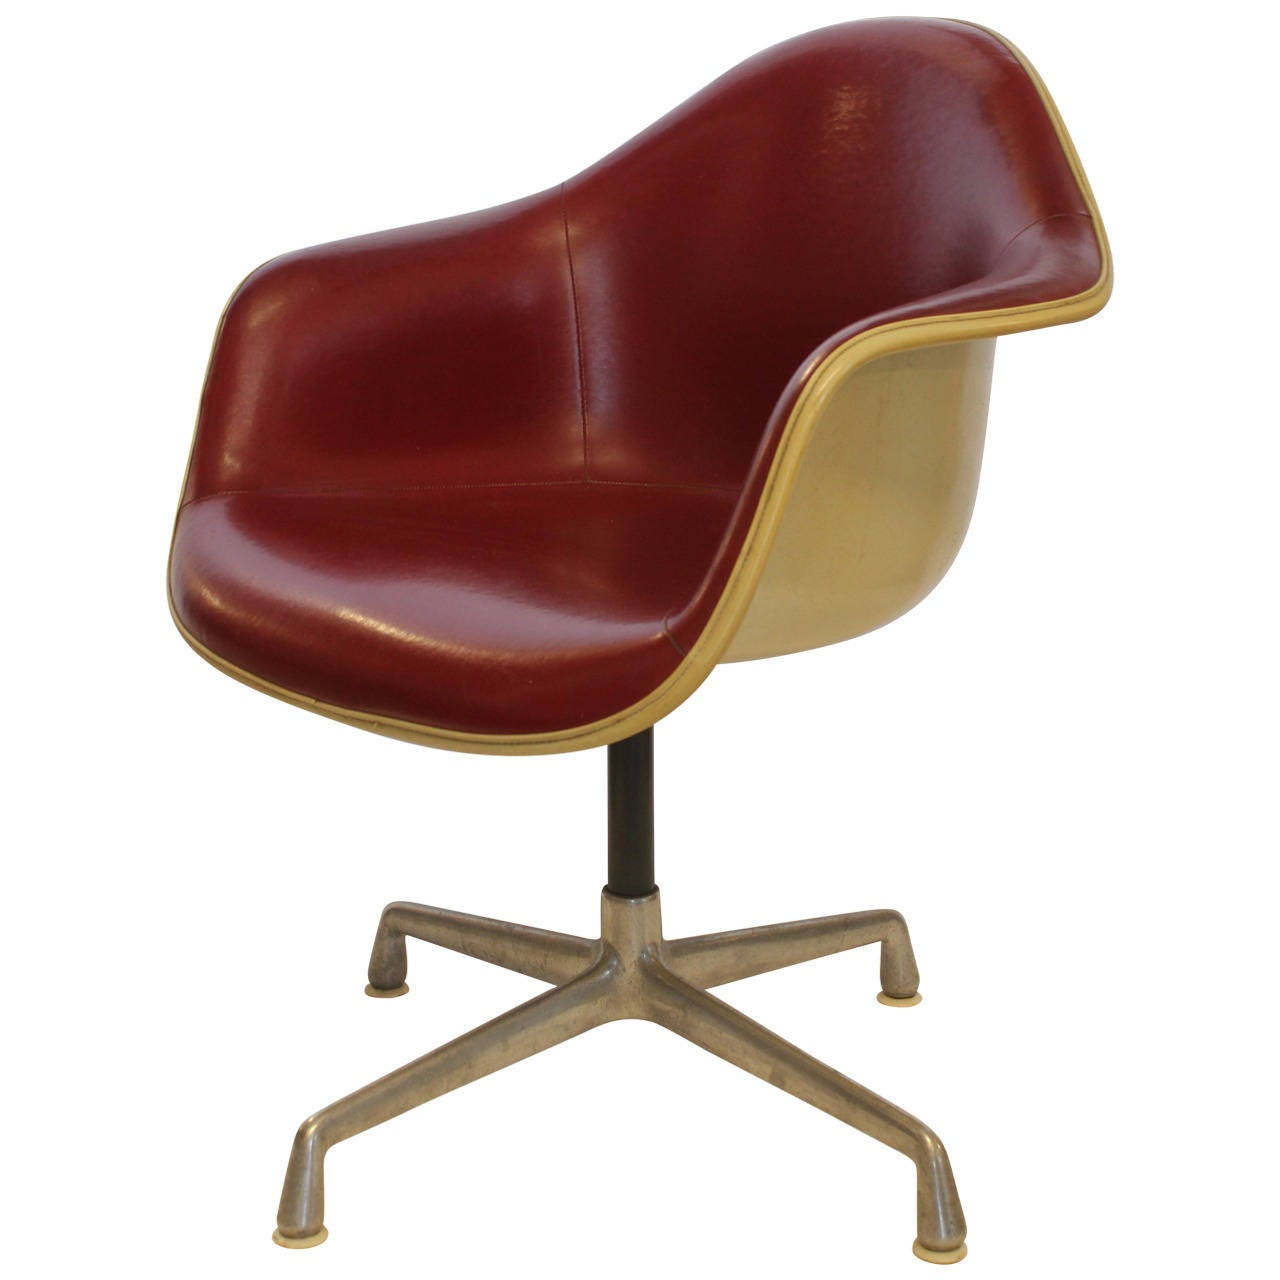 charles eames swivel bucket chair for herman miller for sale at 1stdibs. Black Bedroom Furniture Sets. Home Design Ideas